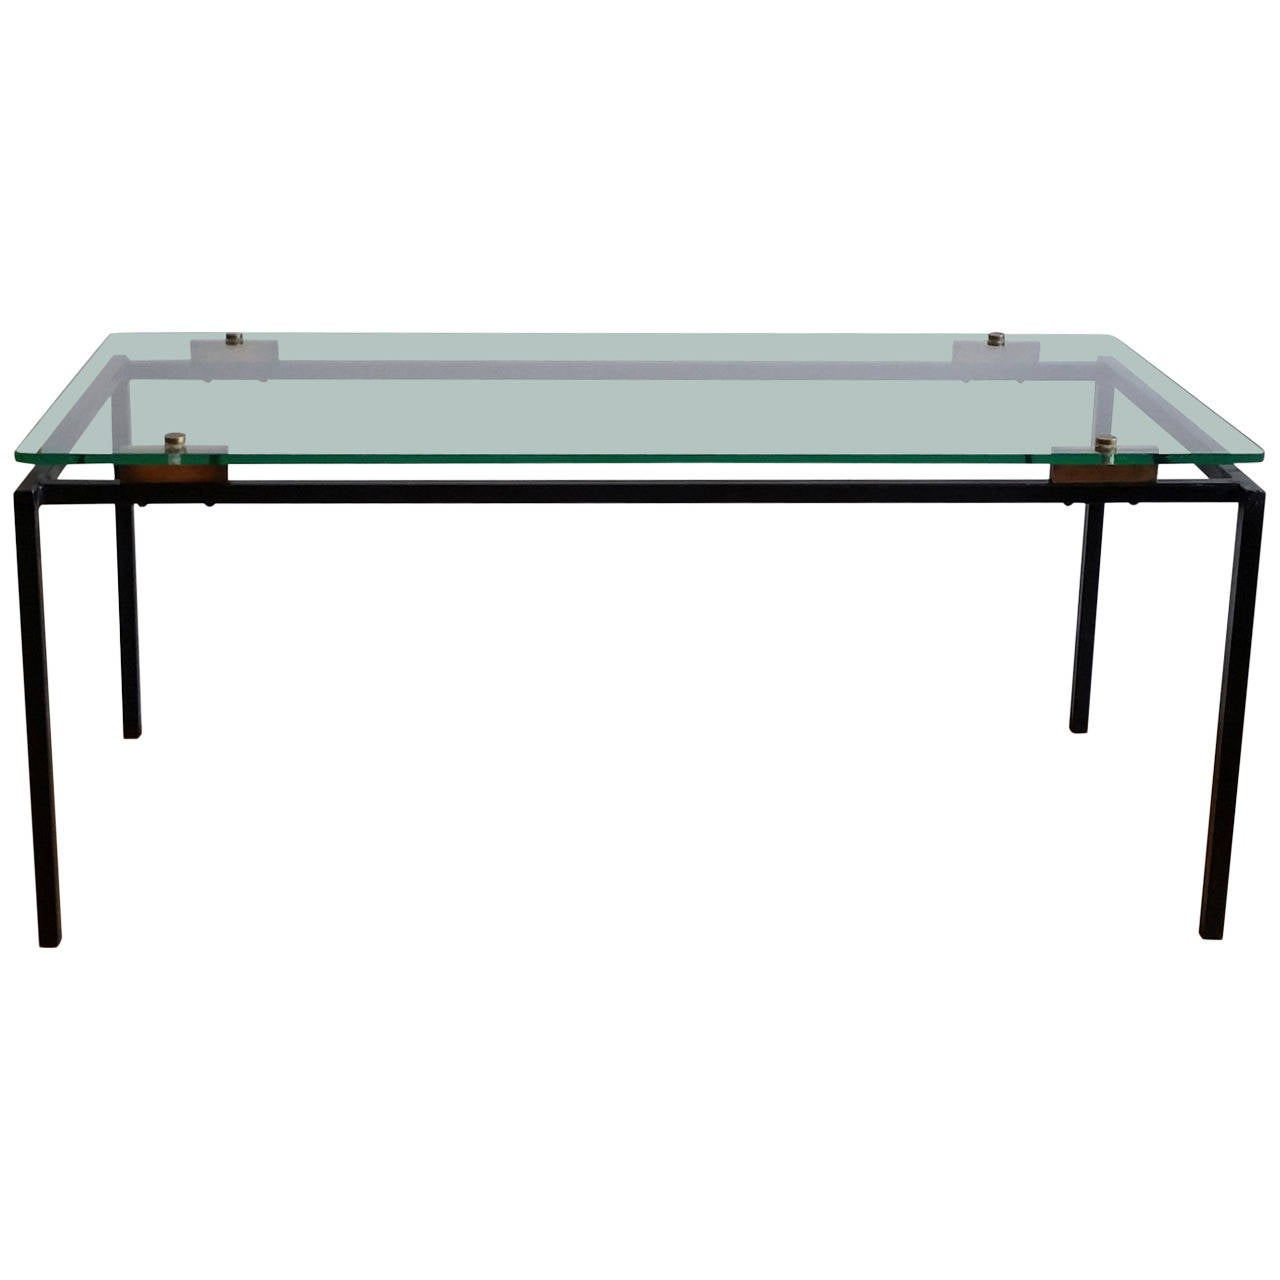 Elegant Lacquered Steel And Glass Coffee Table Attributed To Alain Richard For Sale At 1stdibs